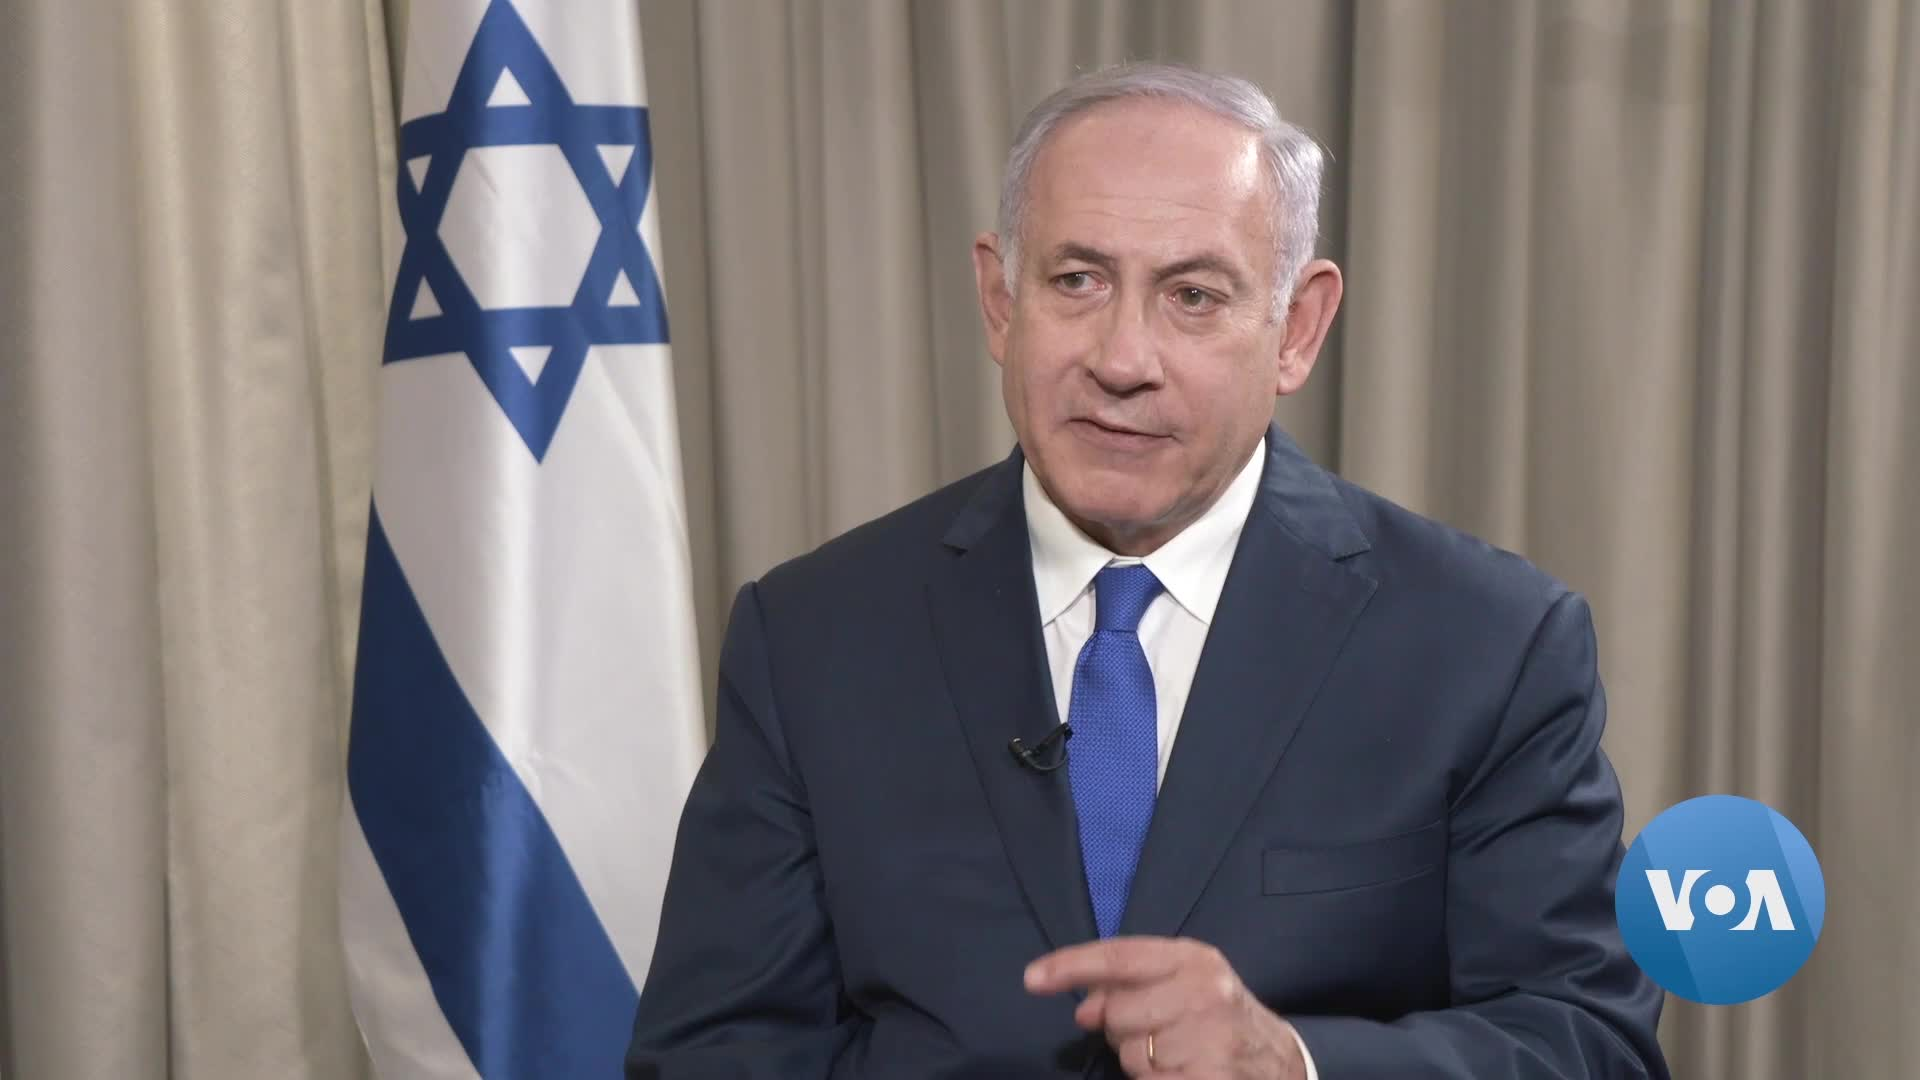 VOA Persian Interviews Israel's Netanyahu | Voice of America - English